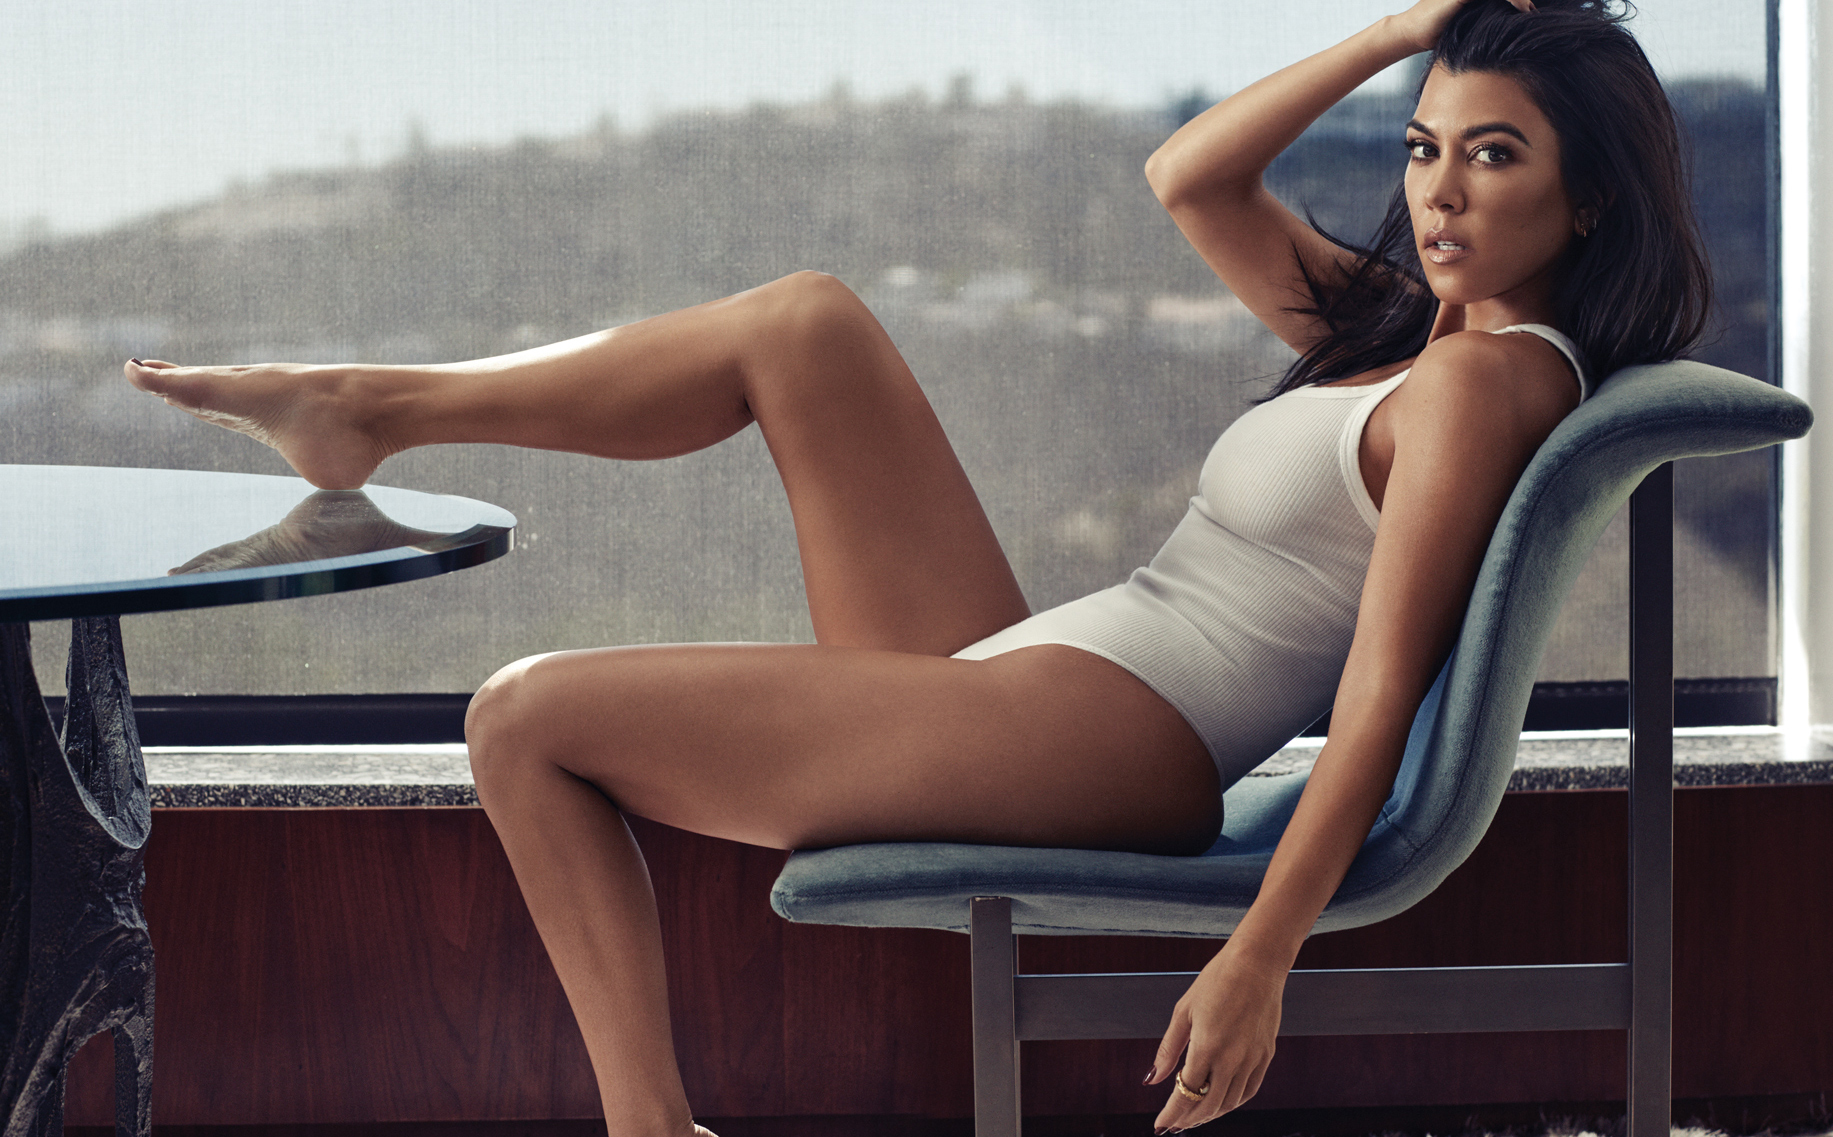 Celebrity Photographer Michael Schwartz: Kourtney Kardashian for GQ Mexico magazine in CK